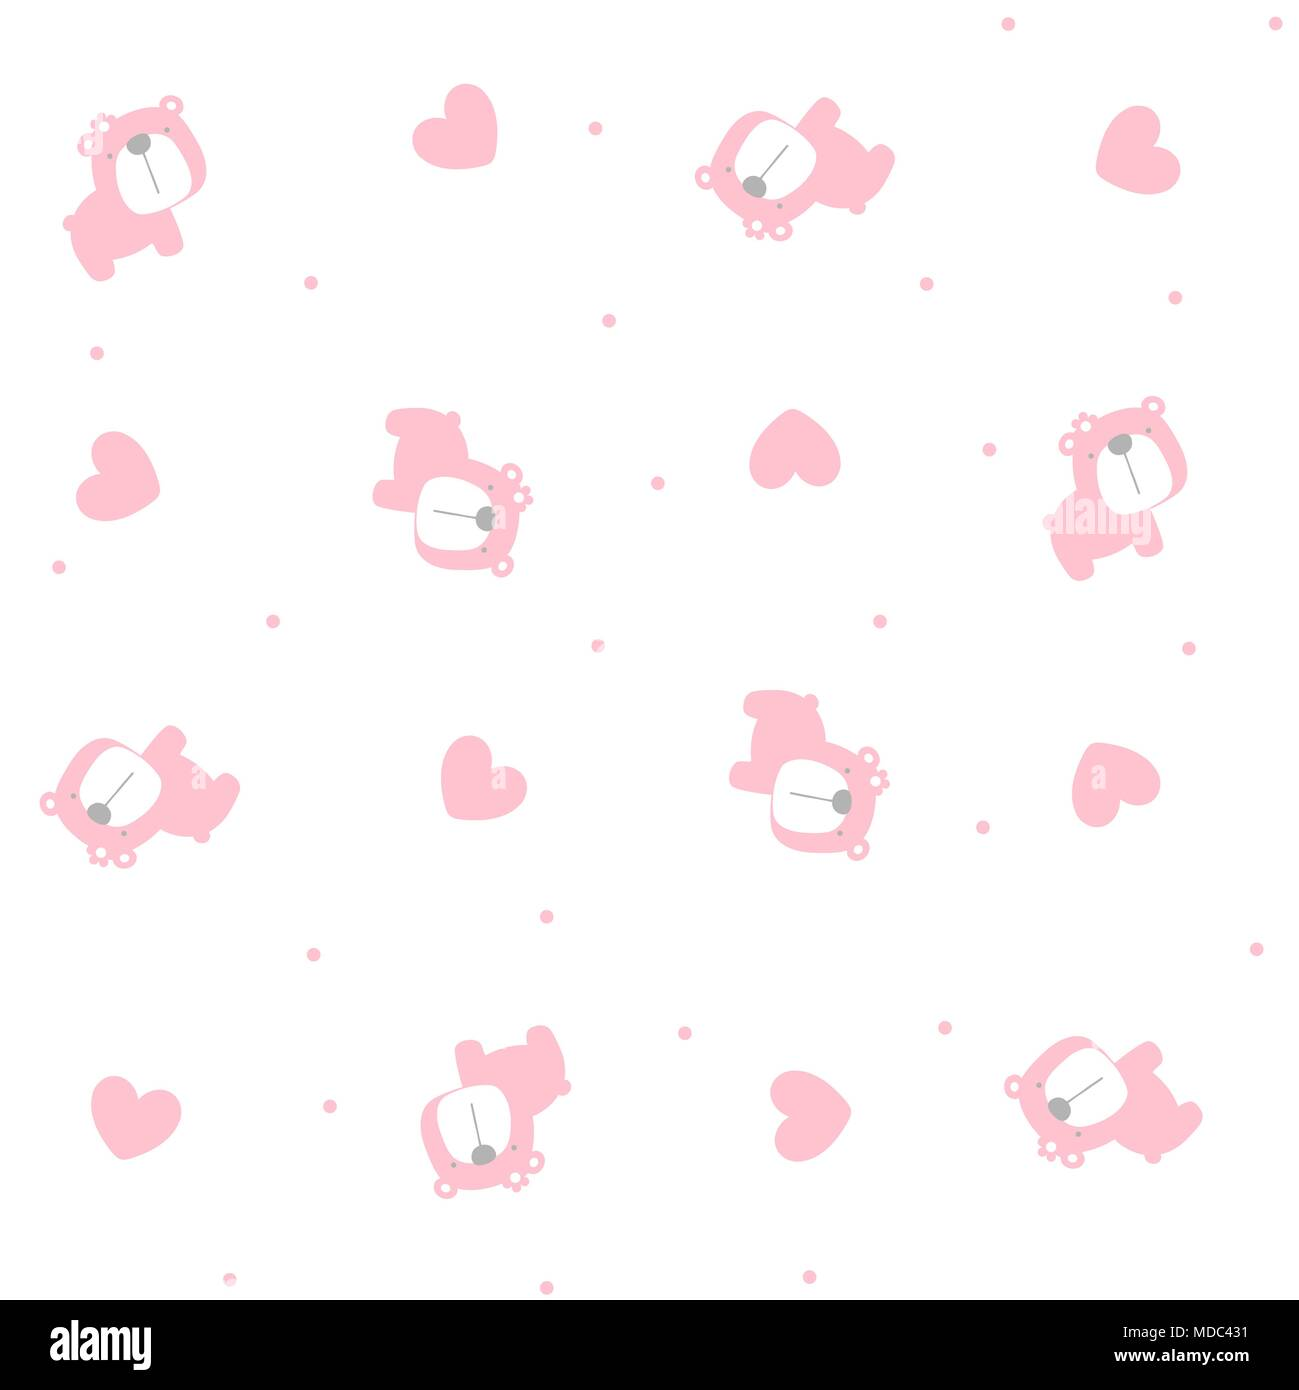 cute baby girl bear seamless pattern with hearts on white background